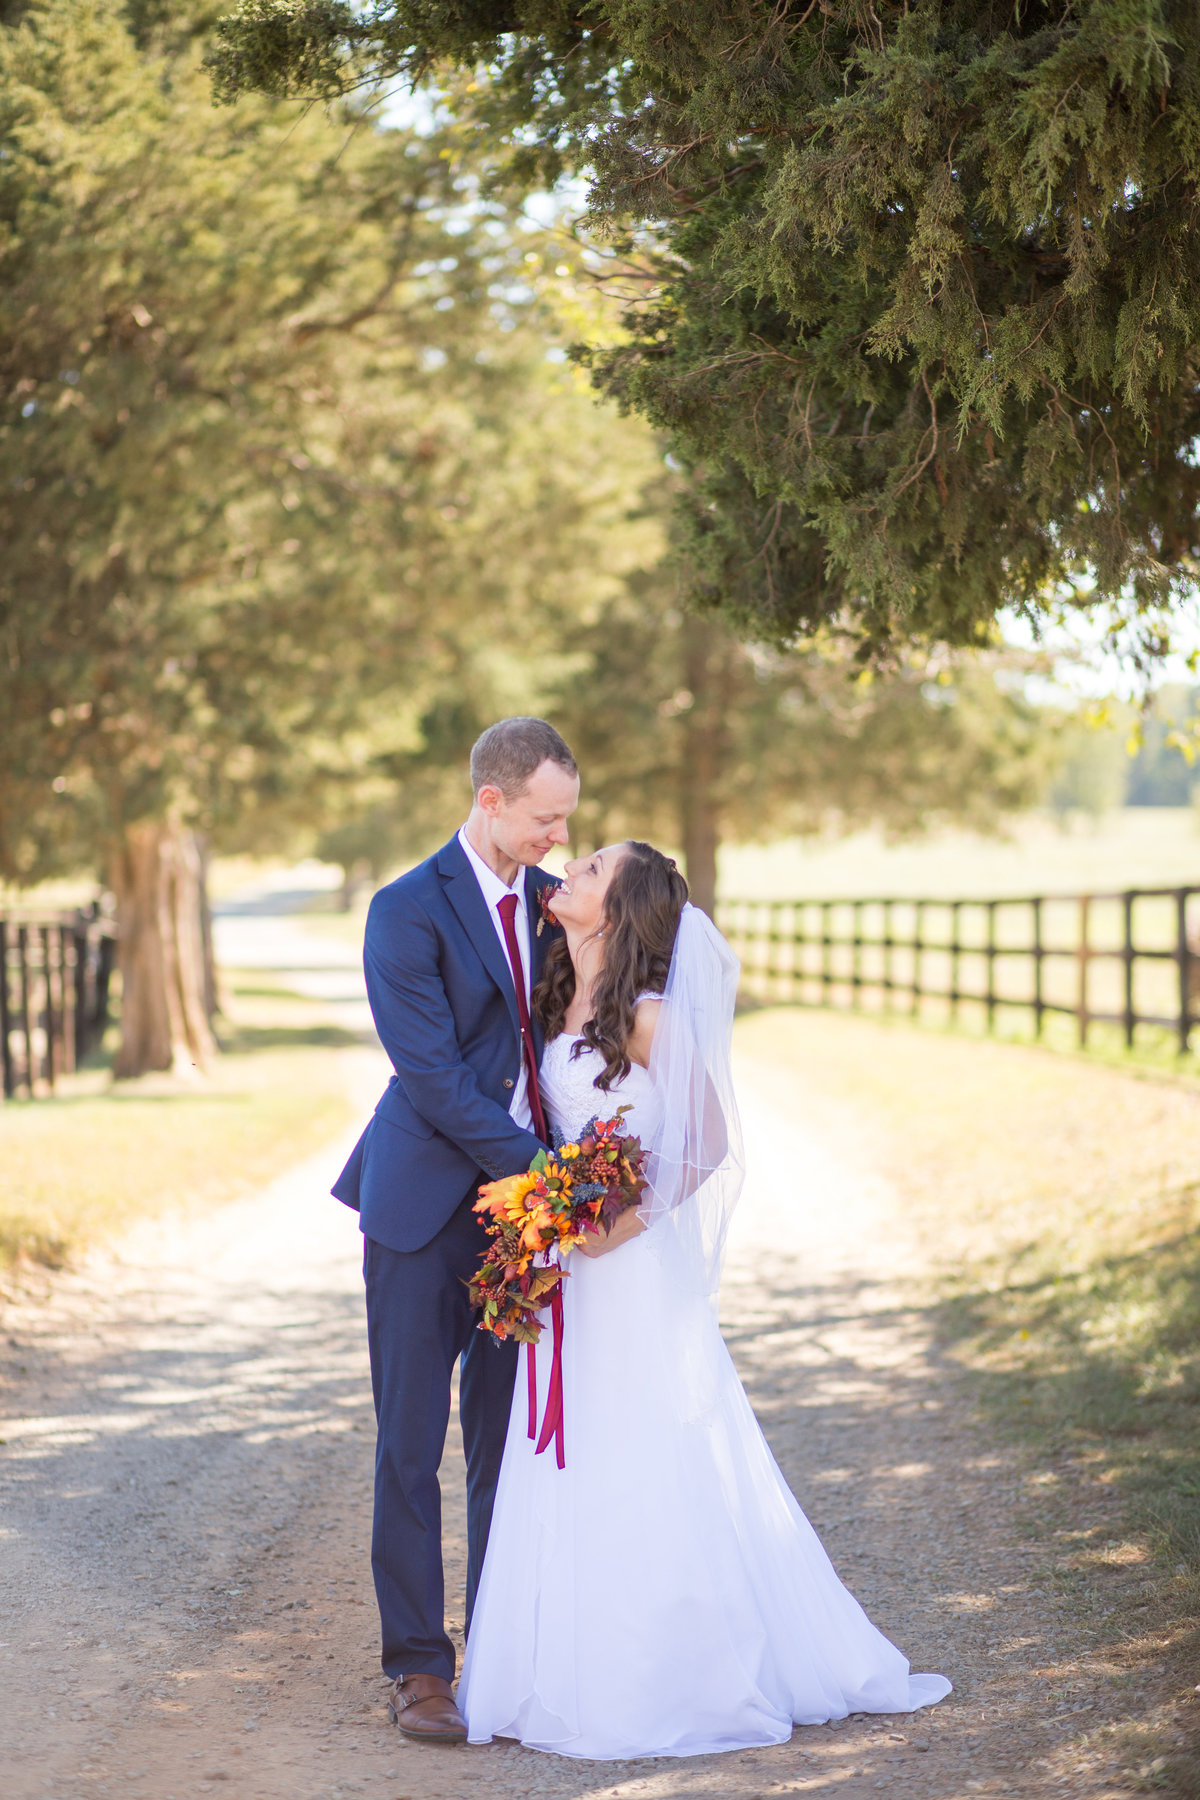 Angie+Jesse-Wolftrap-Farm-Wedding-VA-MermaidlakePhotography-638-47